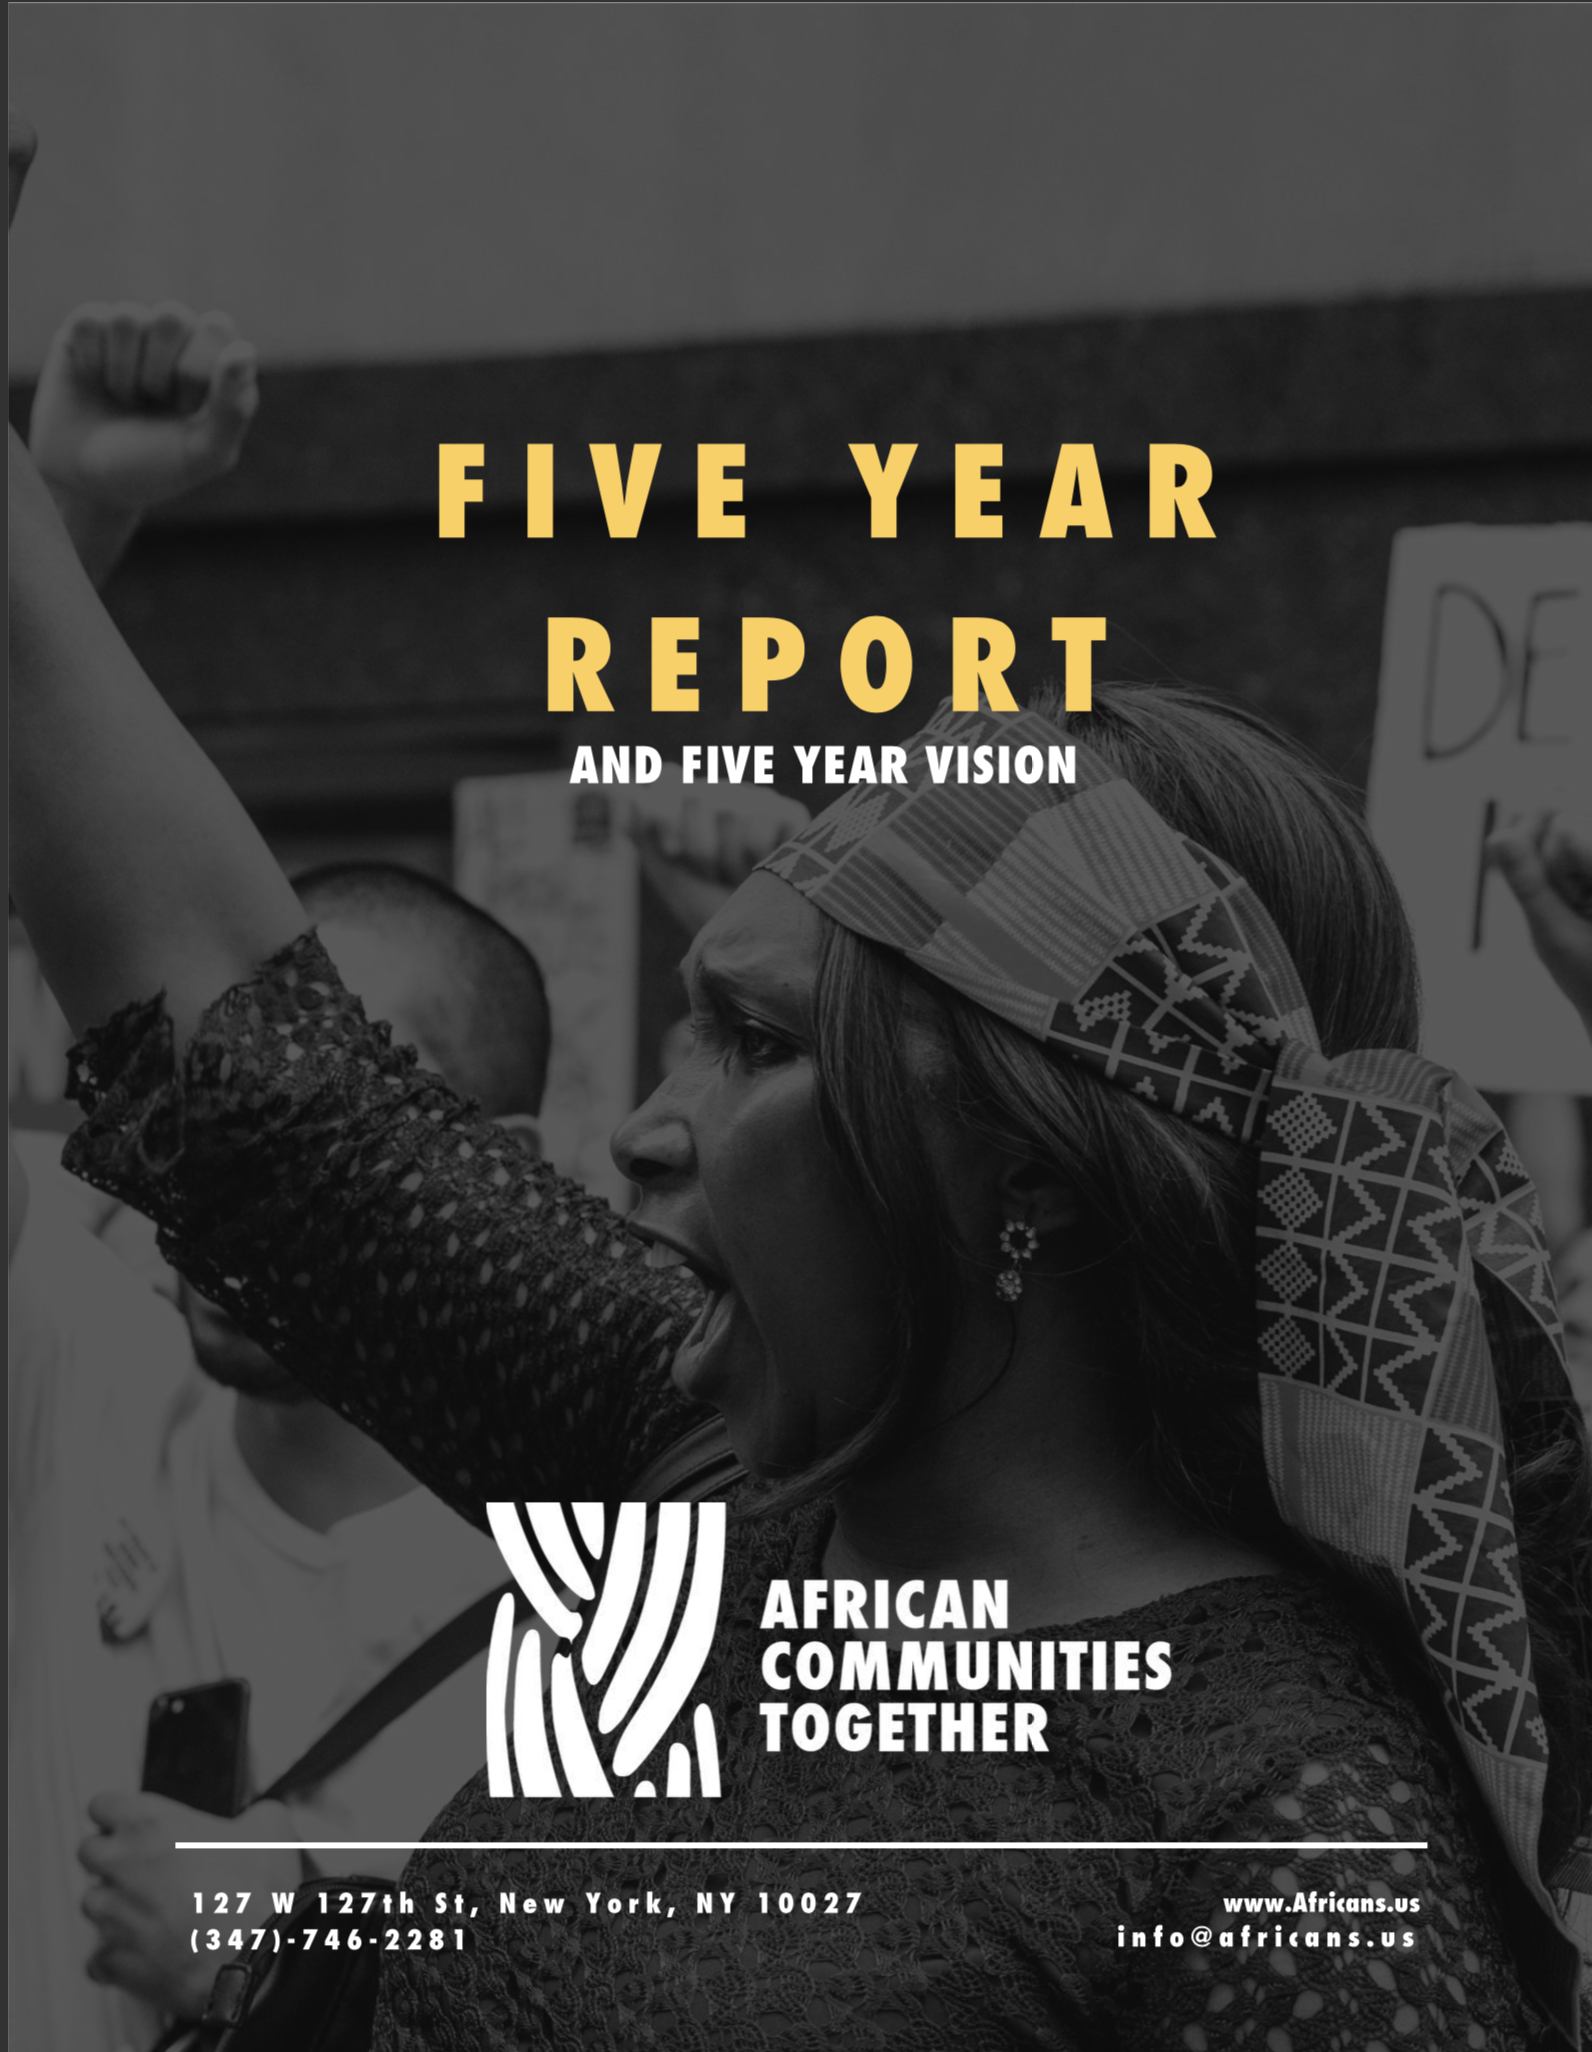 Five Year Report and Five Year Vision